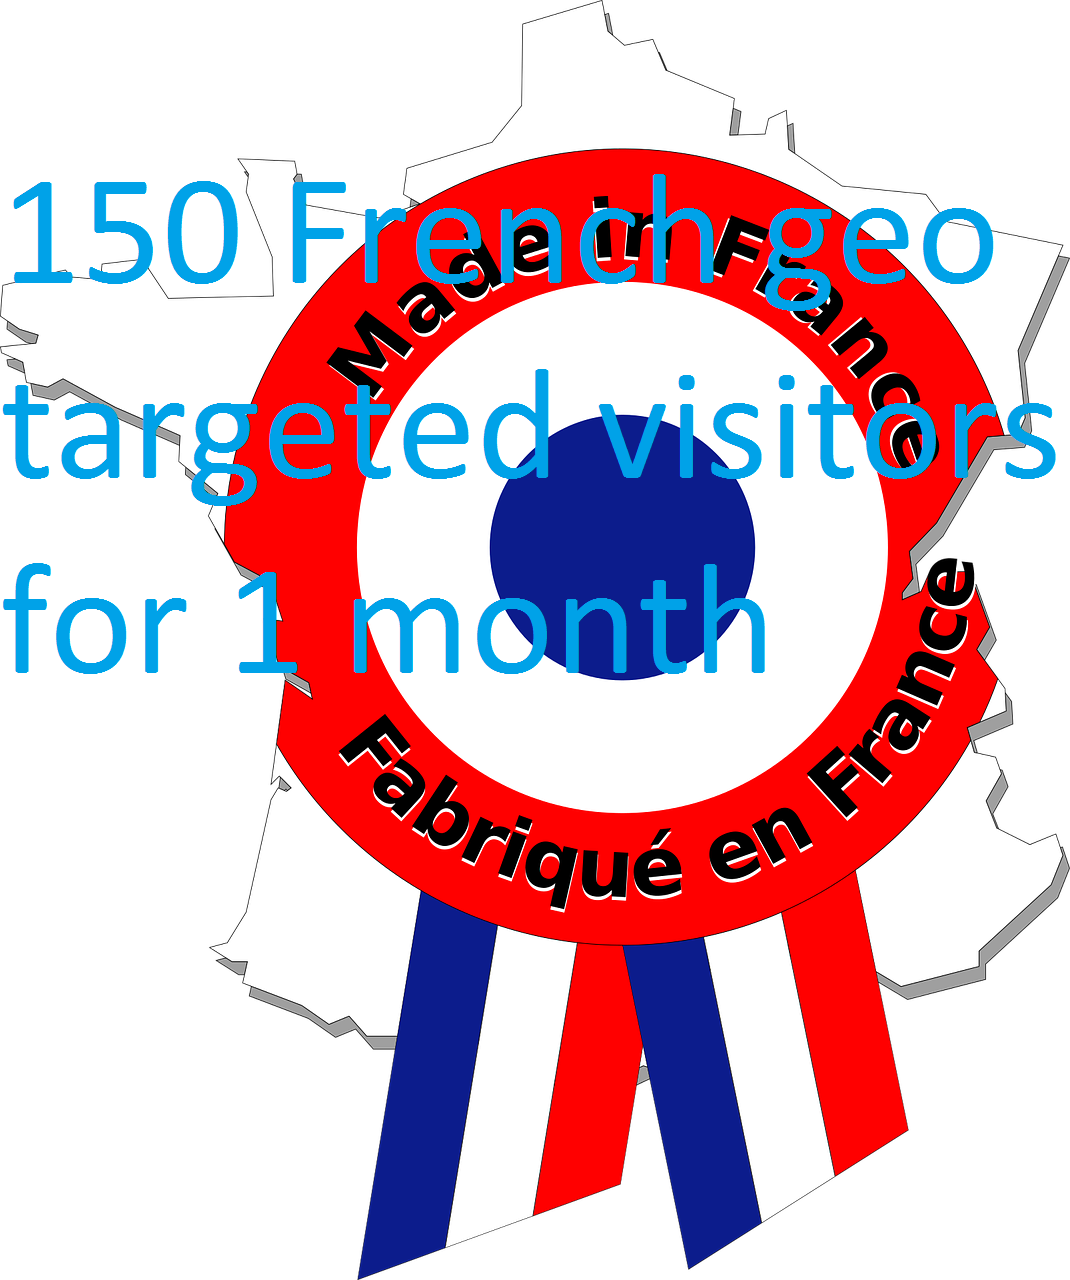 Increase your traffic by 150 FRENCH visitors per day for 1 month